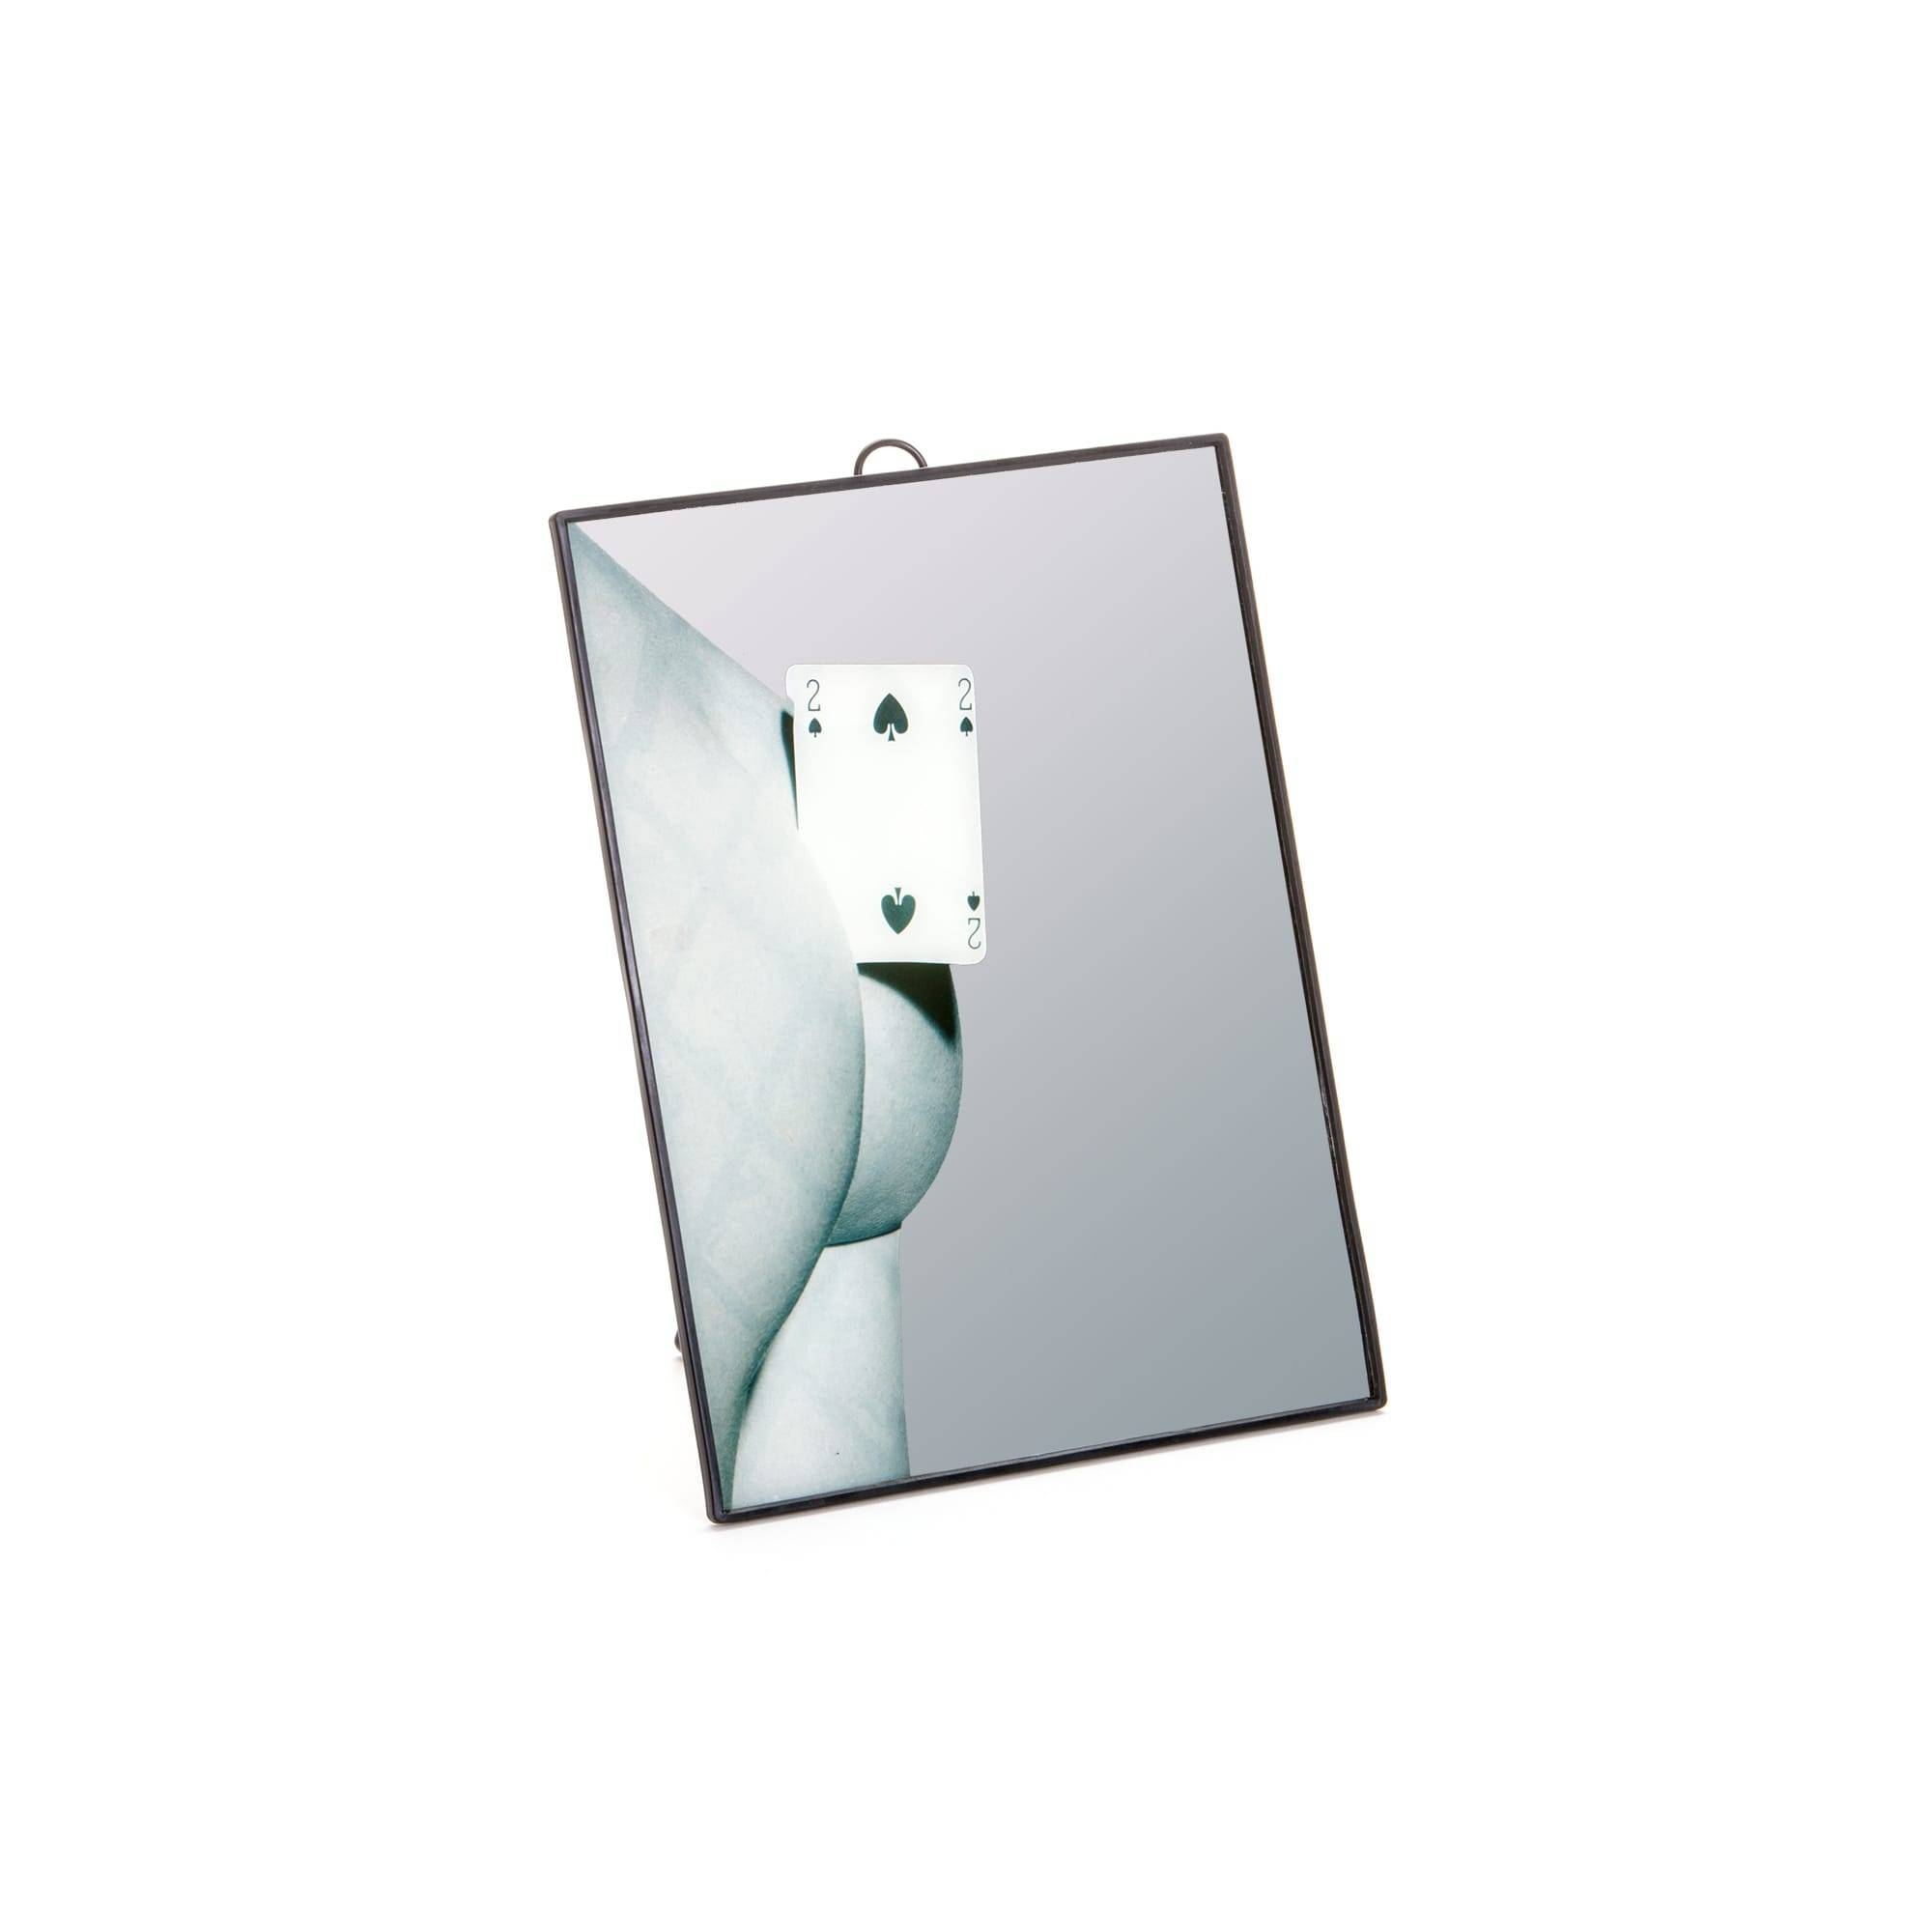 Mirror Small Two Of Spades – Seletti pertaining to Small Mirrors (Image 5 of 15)